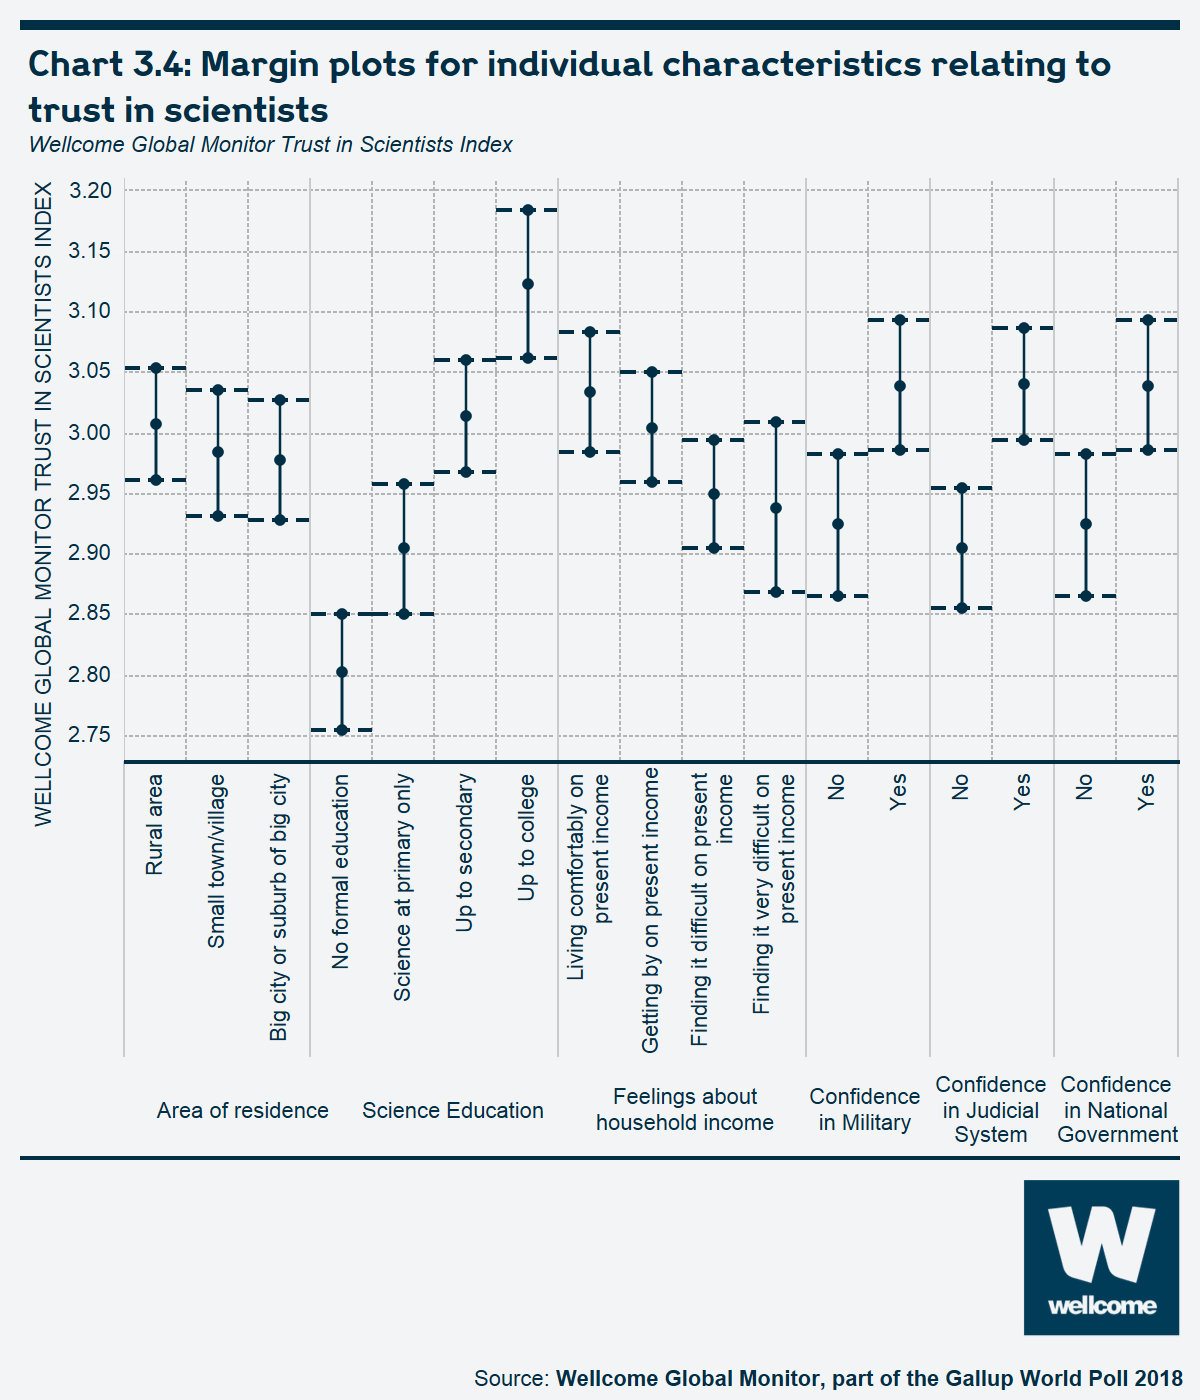 Chart 3.4 Margin plots for individual characteristics relating to trust in scientists